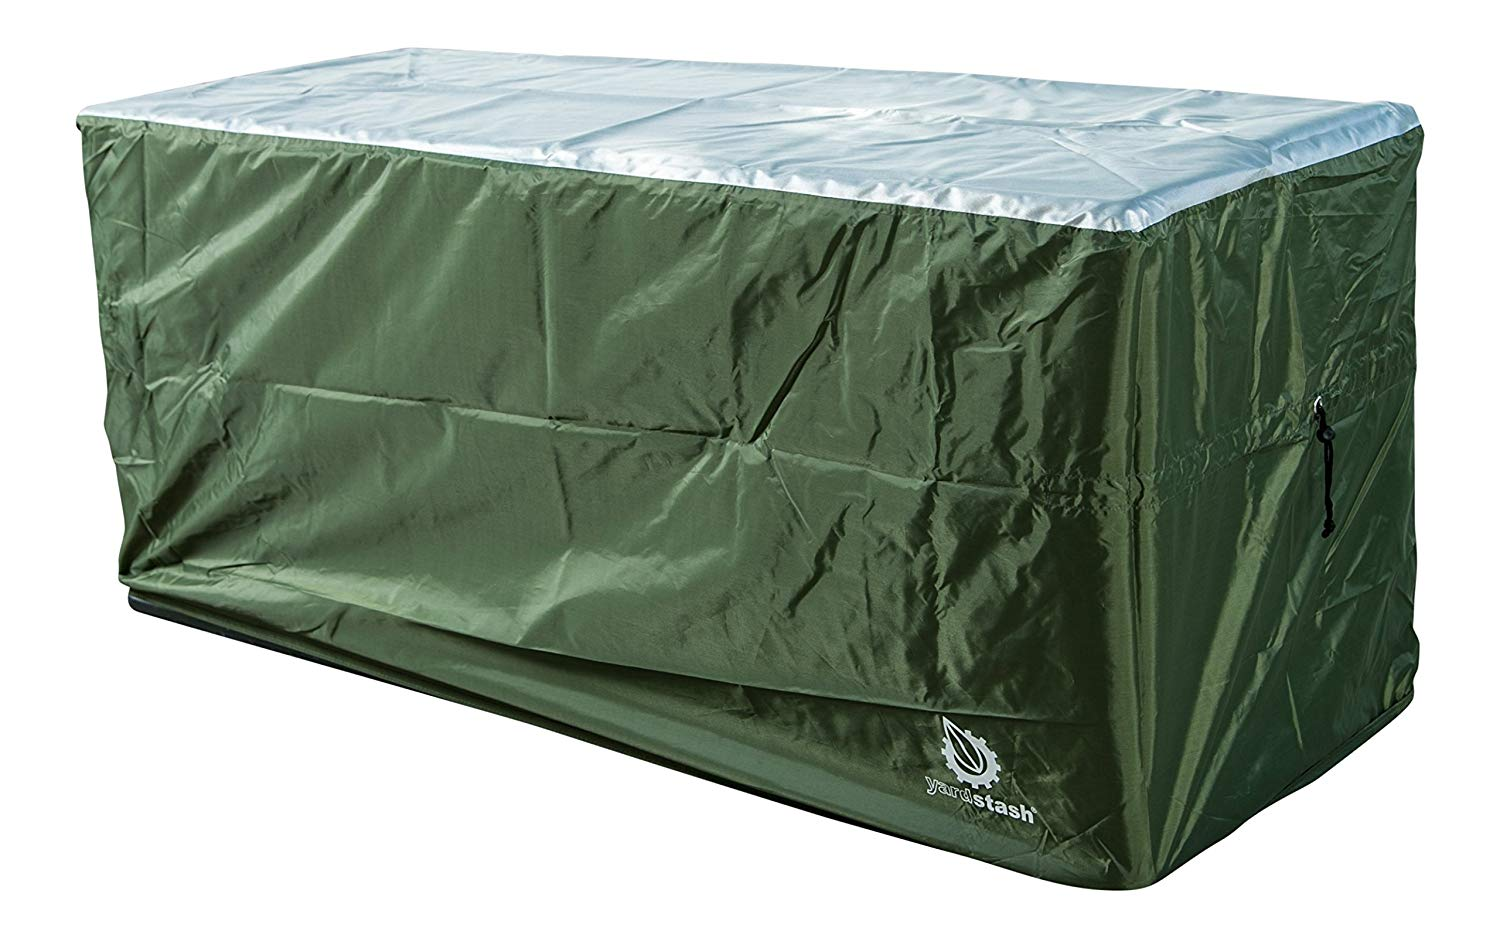 YardStash Deck Box Cover Large to Protect Your Deck Box: Suncast DBW9200 Deck Box Cover, Suncast DBW7300 Deck Box Cover, Suncast DB8300 Deck Box Cover, Novel Deck Box Cover & More